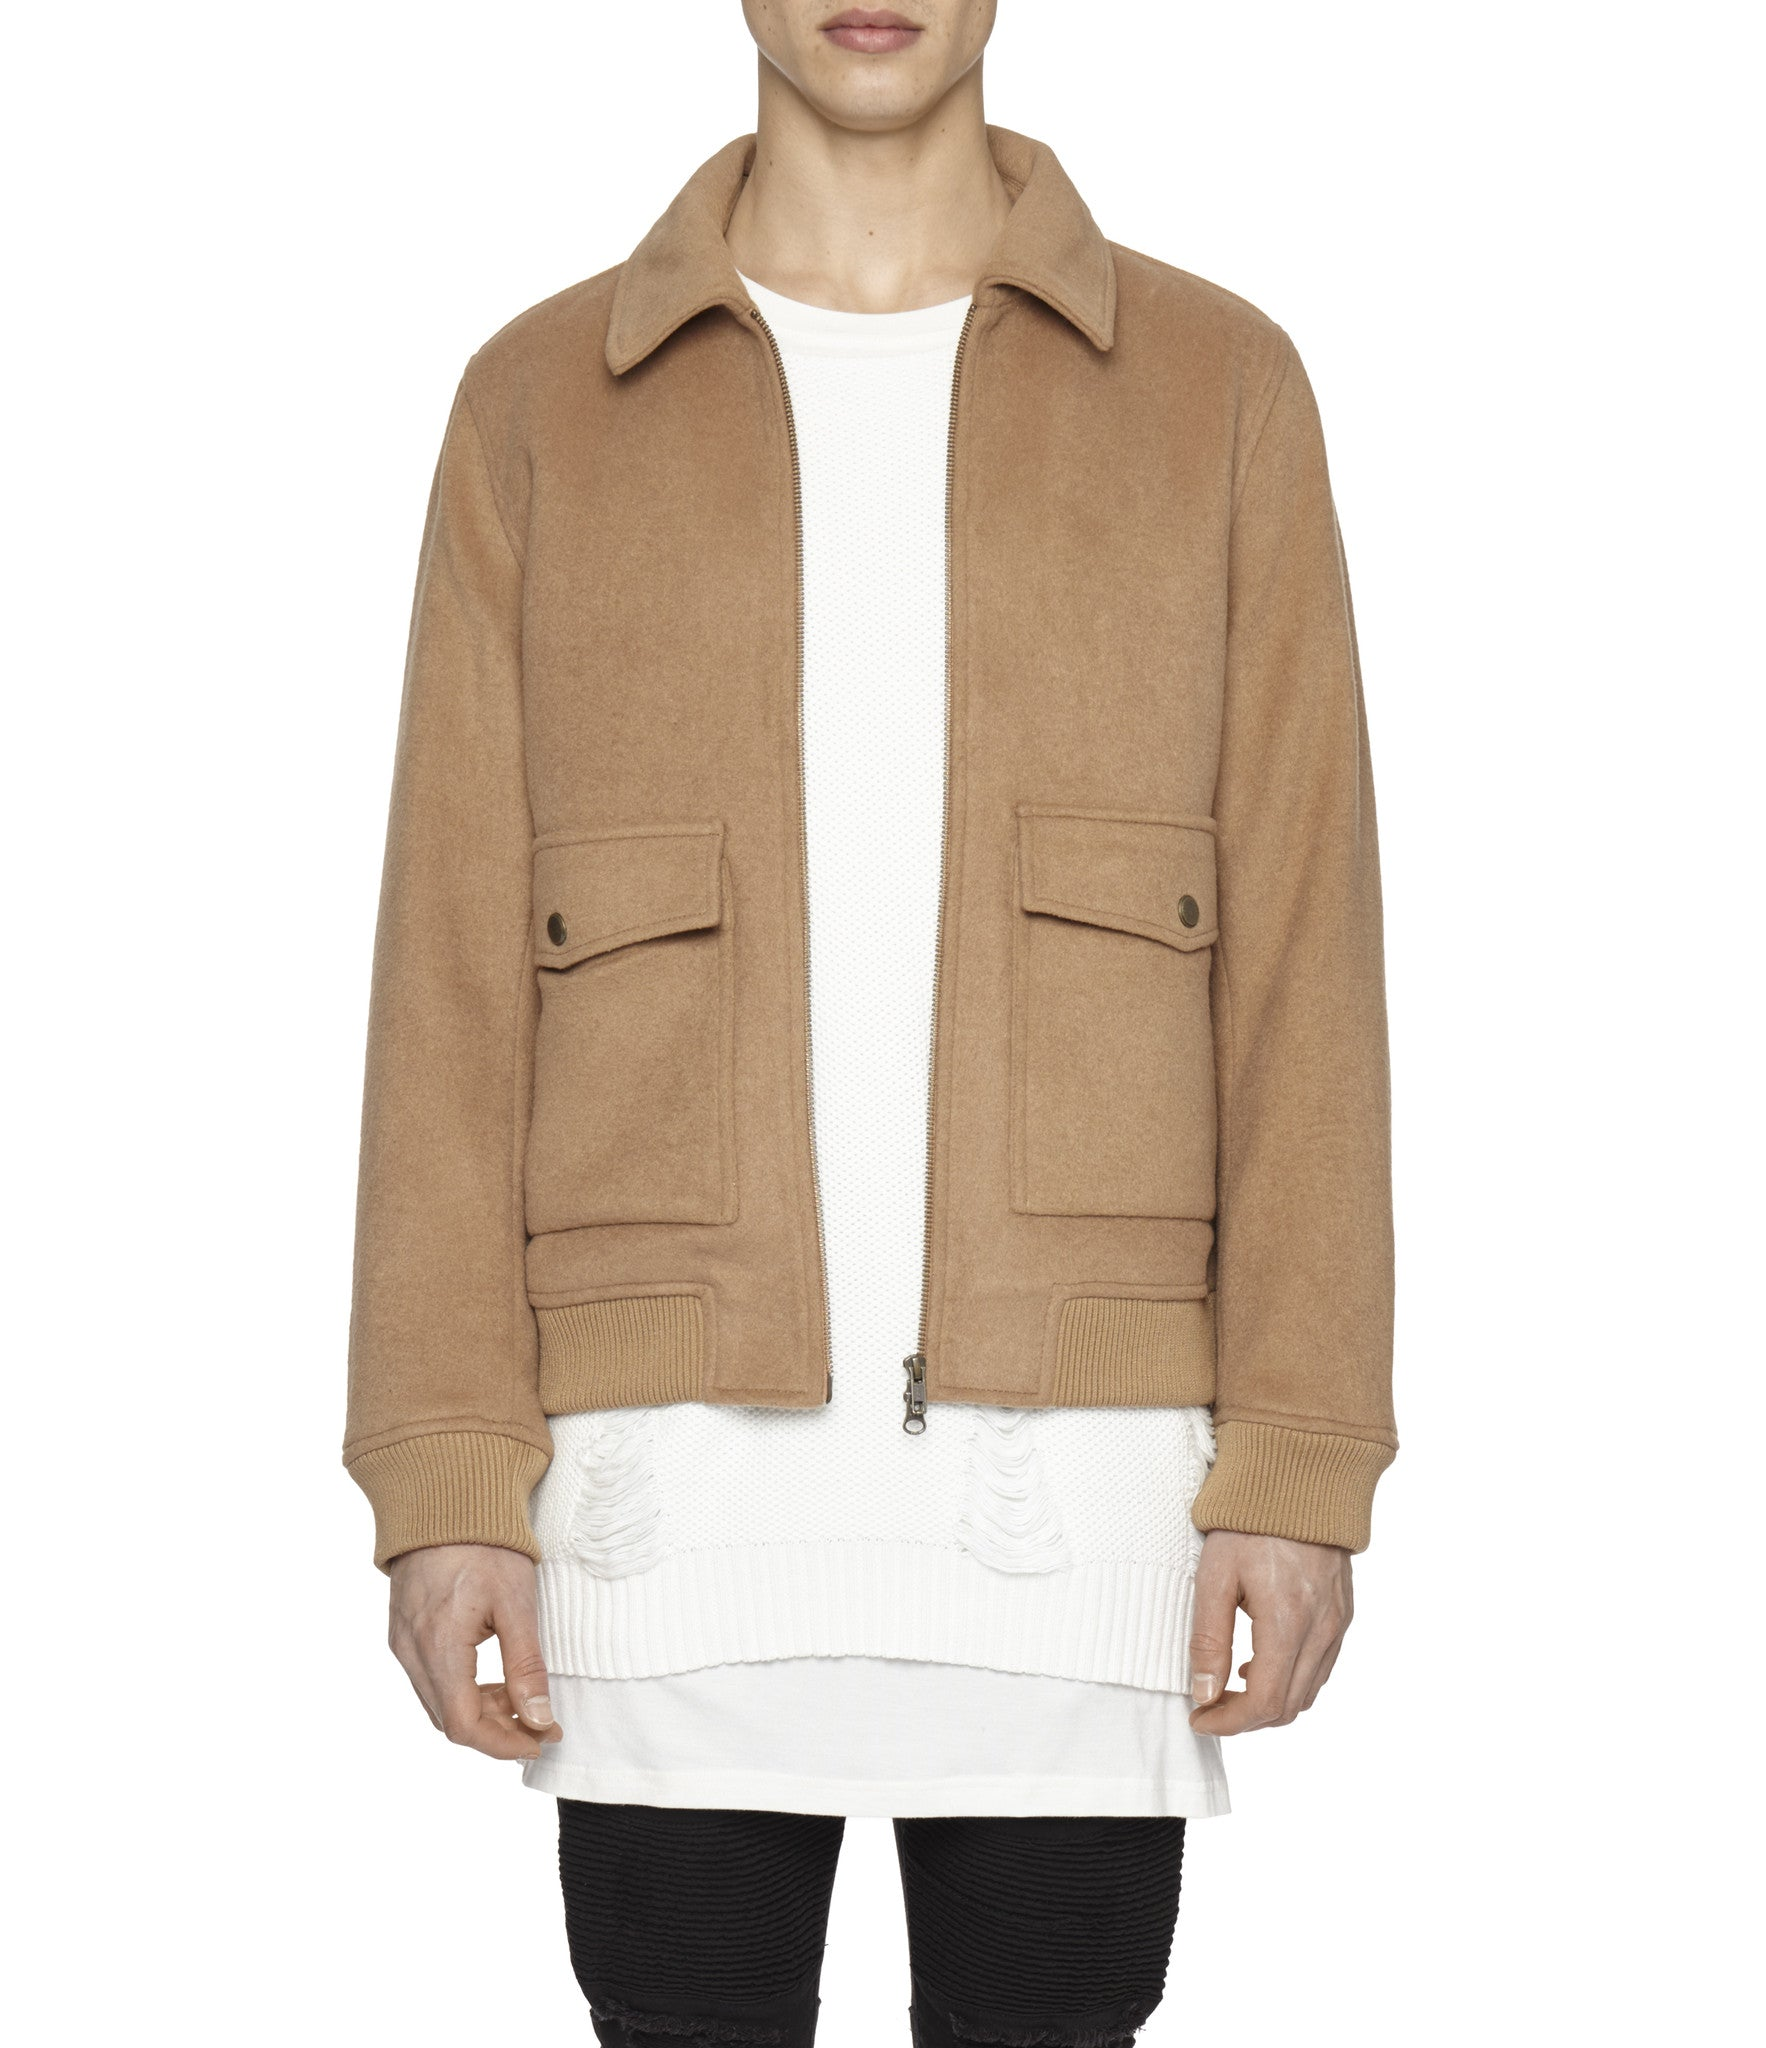 BM20 Shearling-Trimmed Wool Jacket - Camel - underated london - underatedco - 7